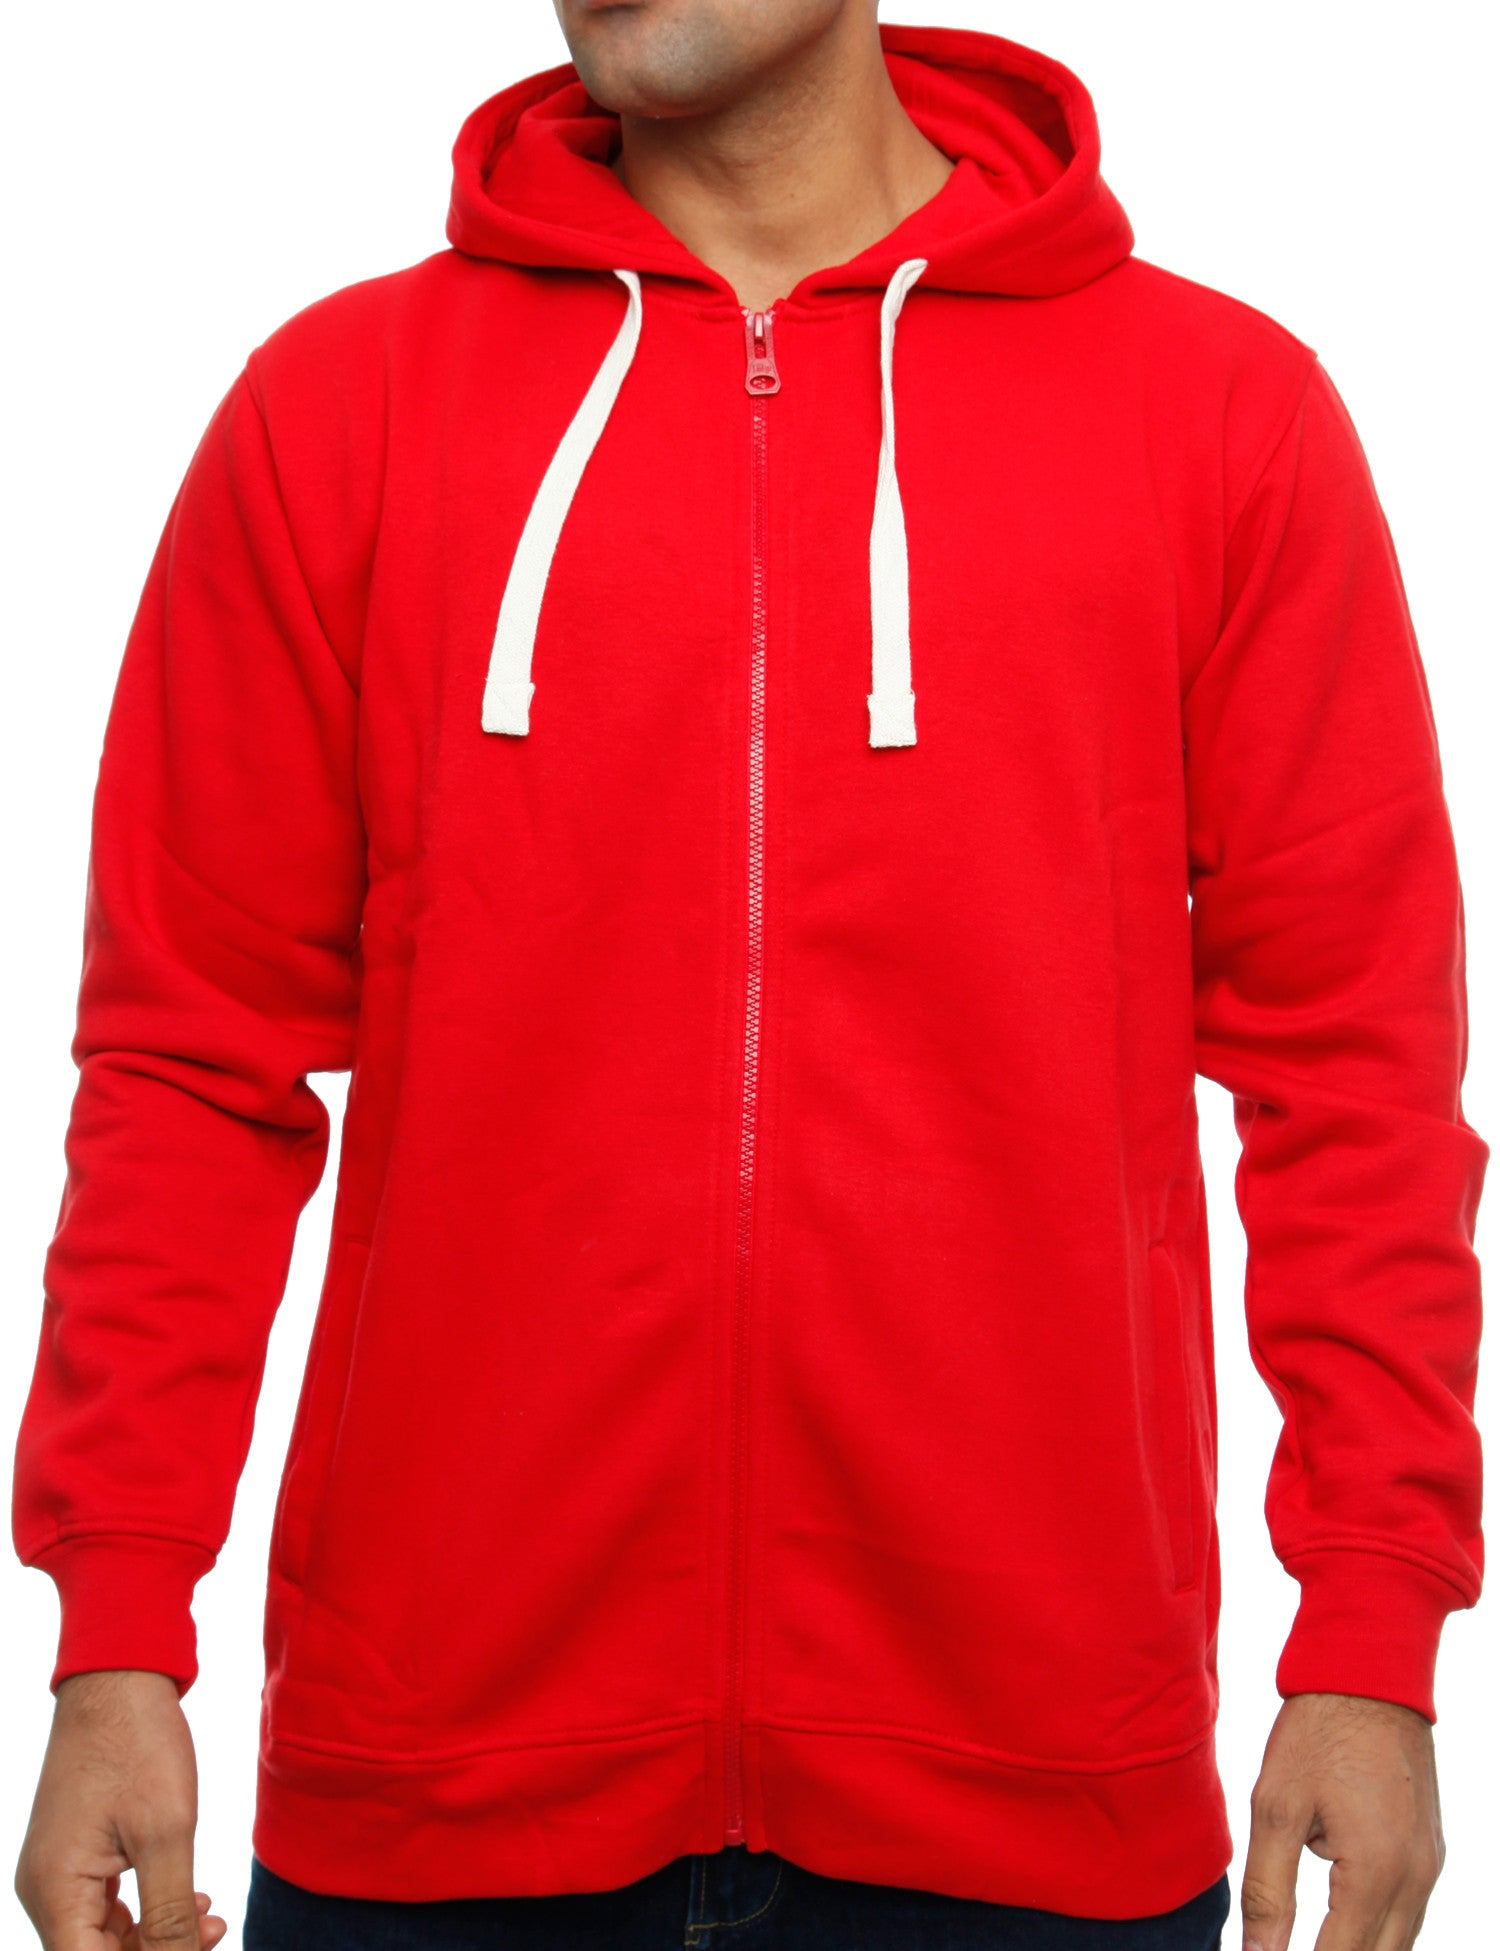 Imperious Hoody HS200 Red